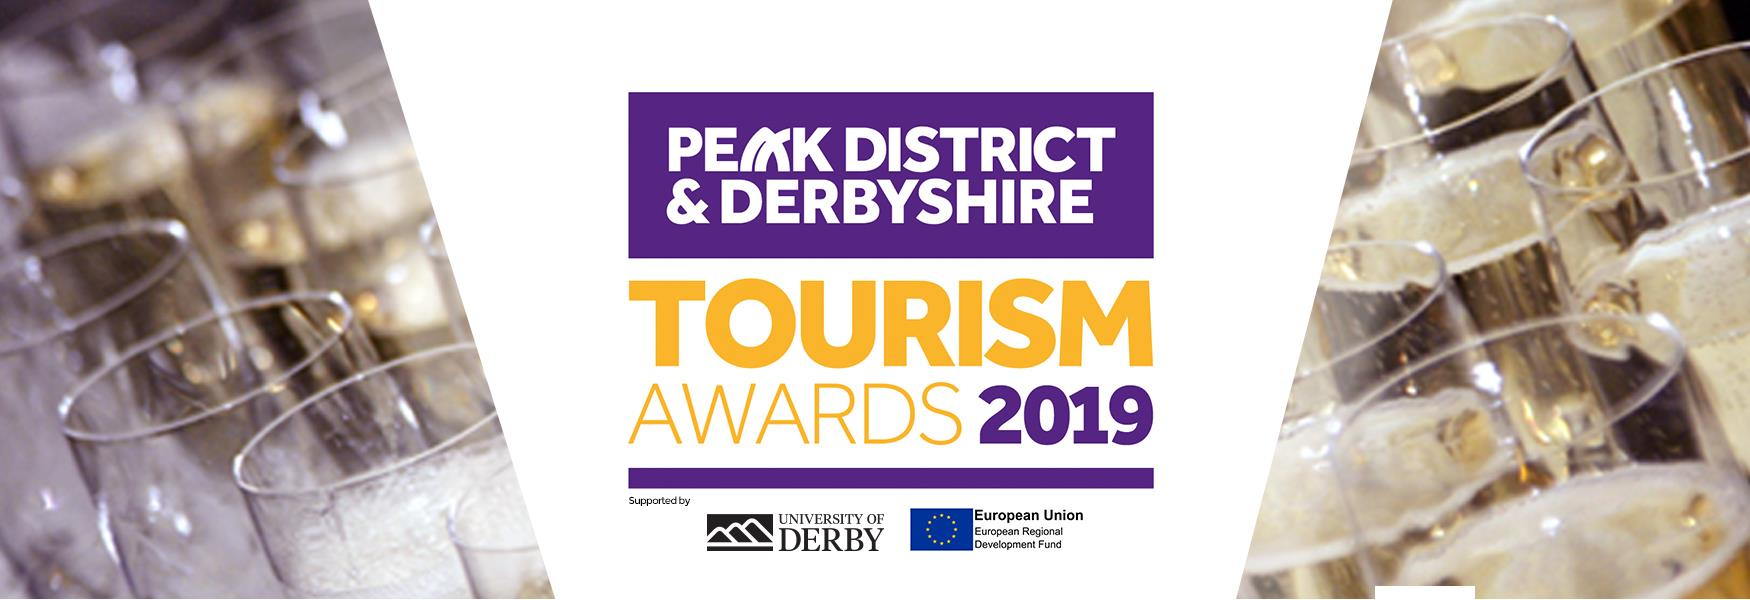 Click to enter the Peak District & Derbyshire Tourism Awards 2019